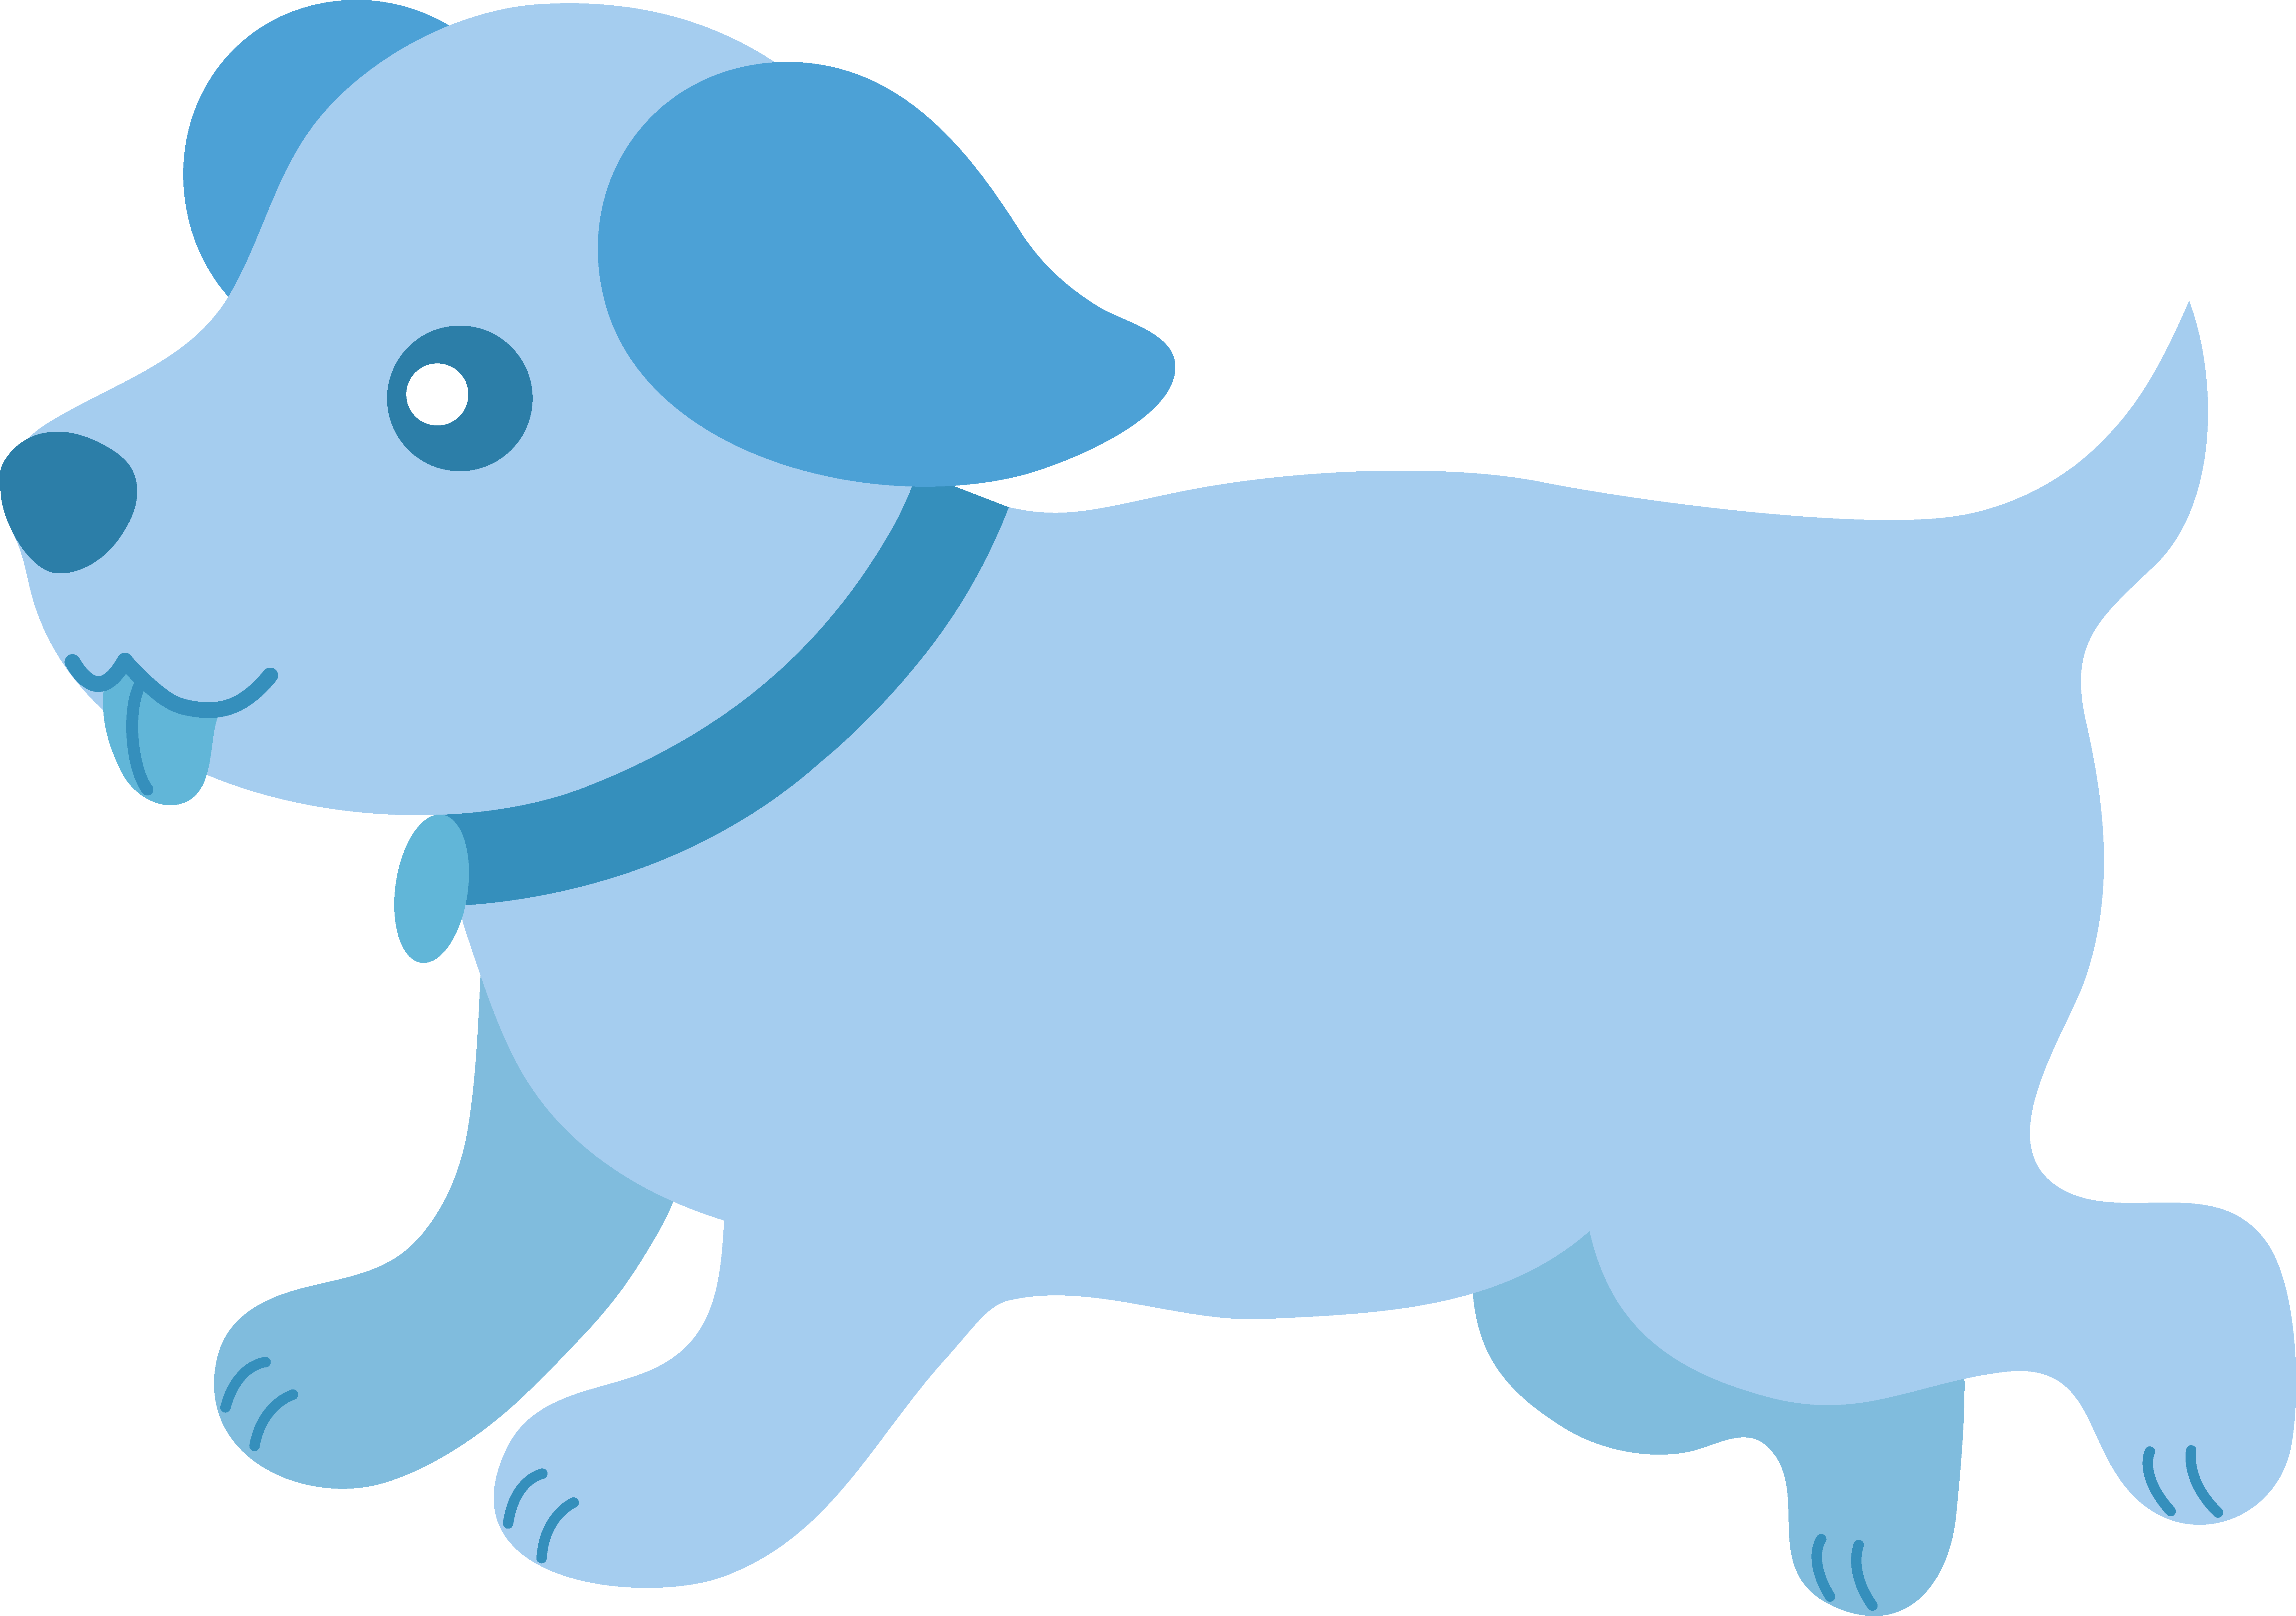 puppy svg transparent. Doggy drawing little dog vector free